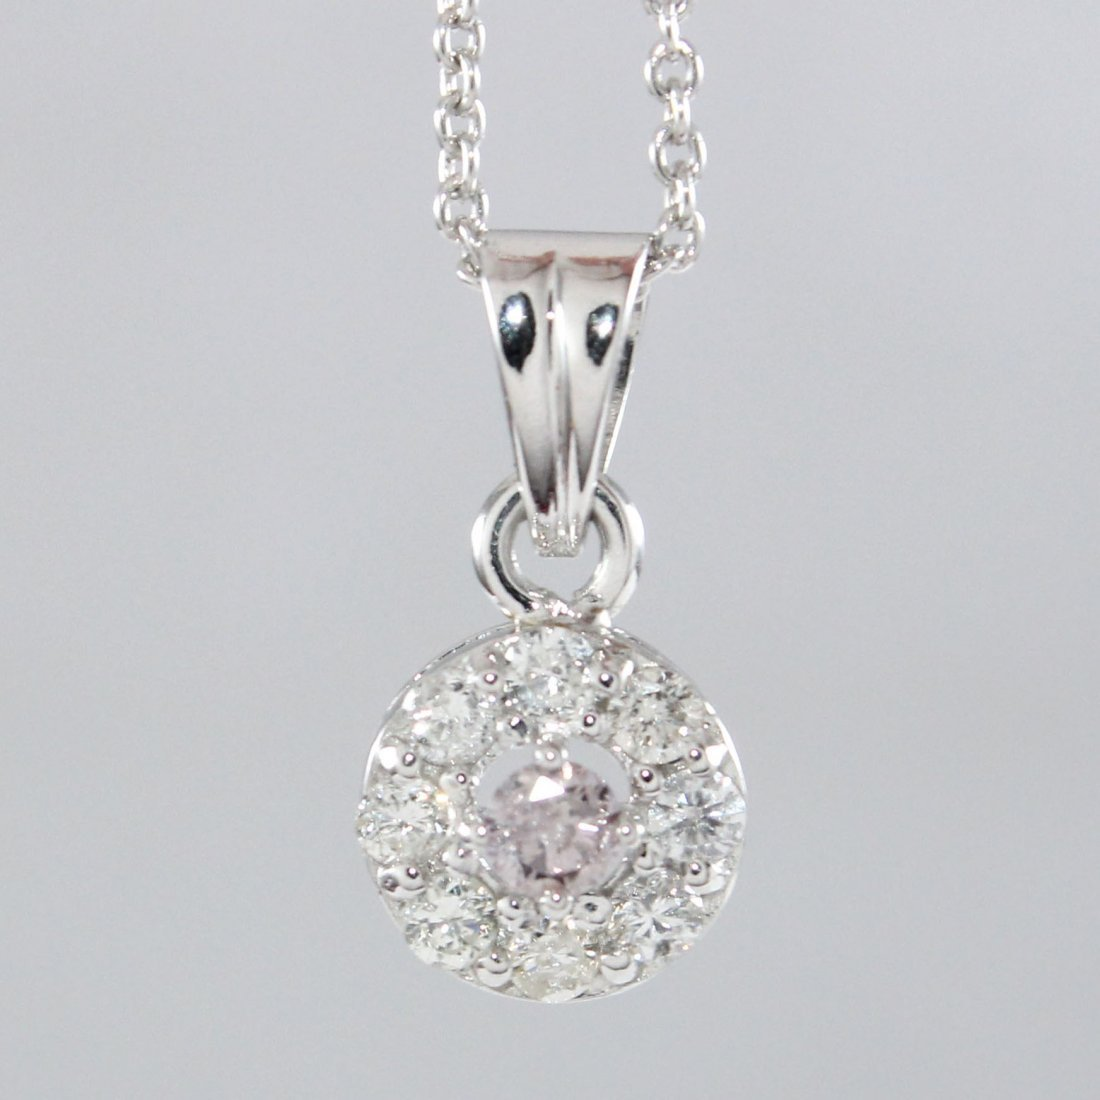 14K White Gold PINK Diamond Pendant Necklace & Earrings